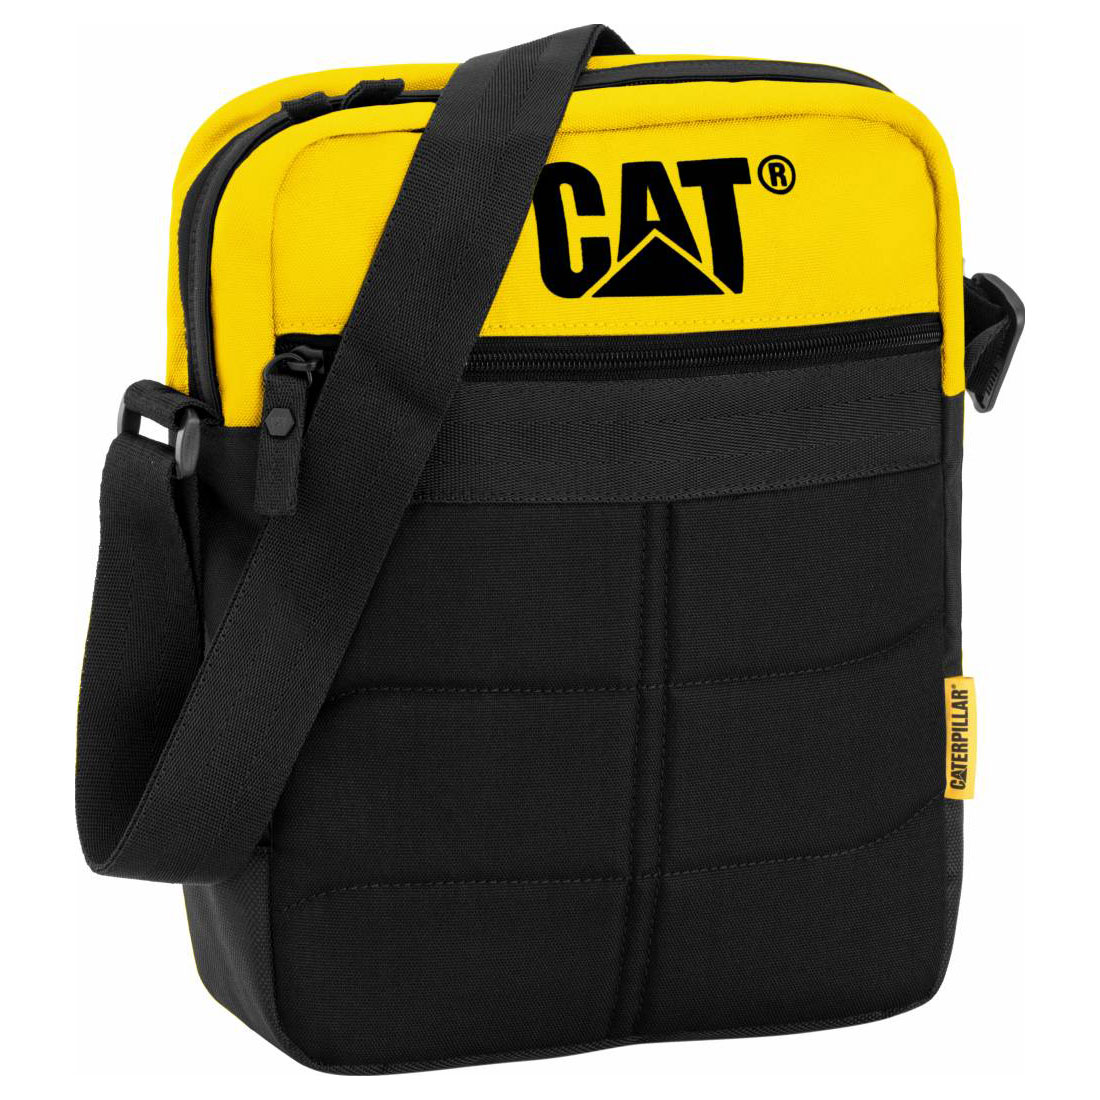 570caf296d ... Cat Ryan  Caterpillar CAT Ryan (Noir Jaune)